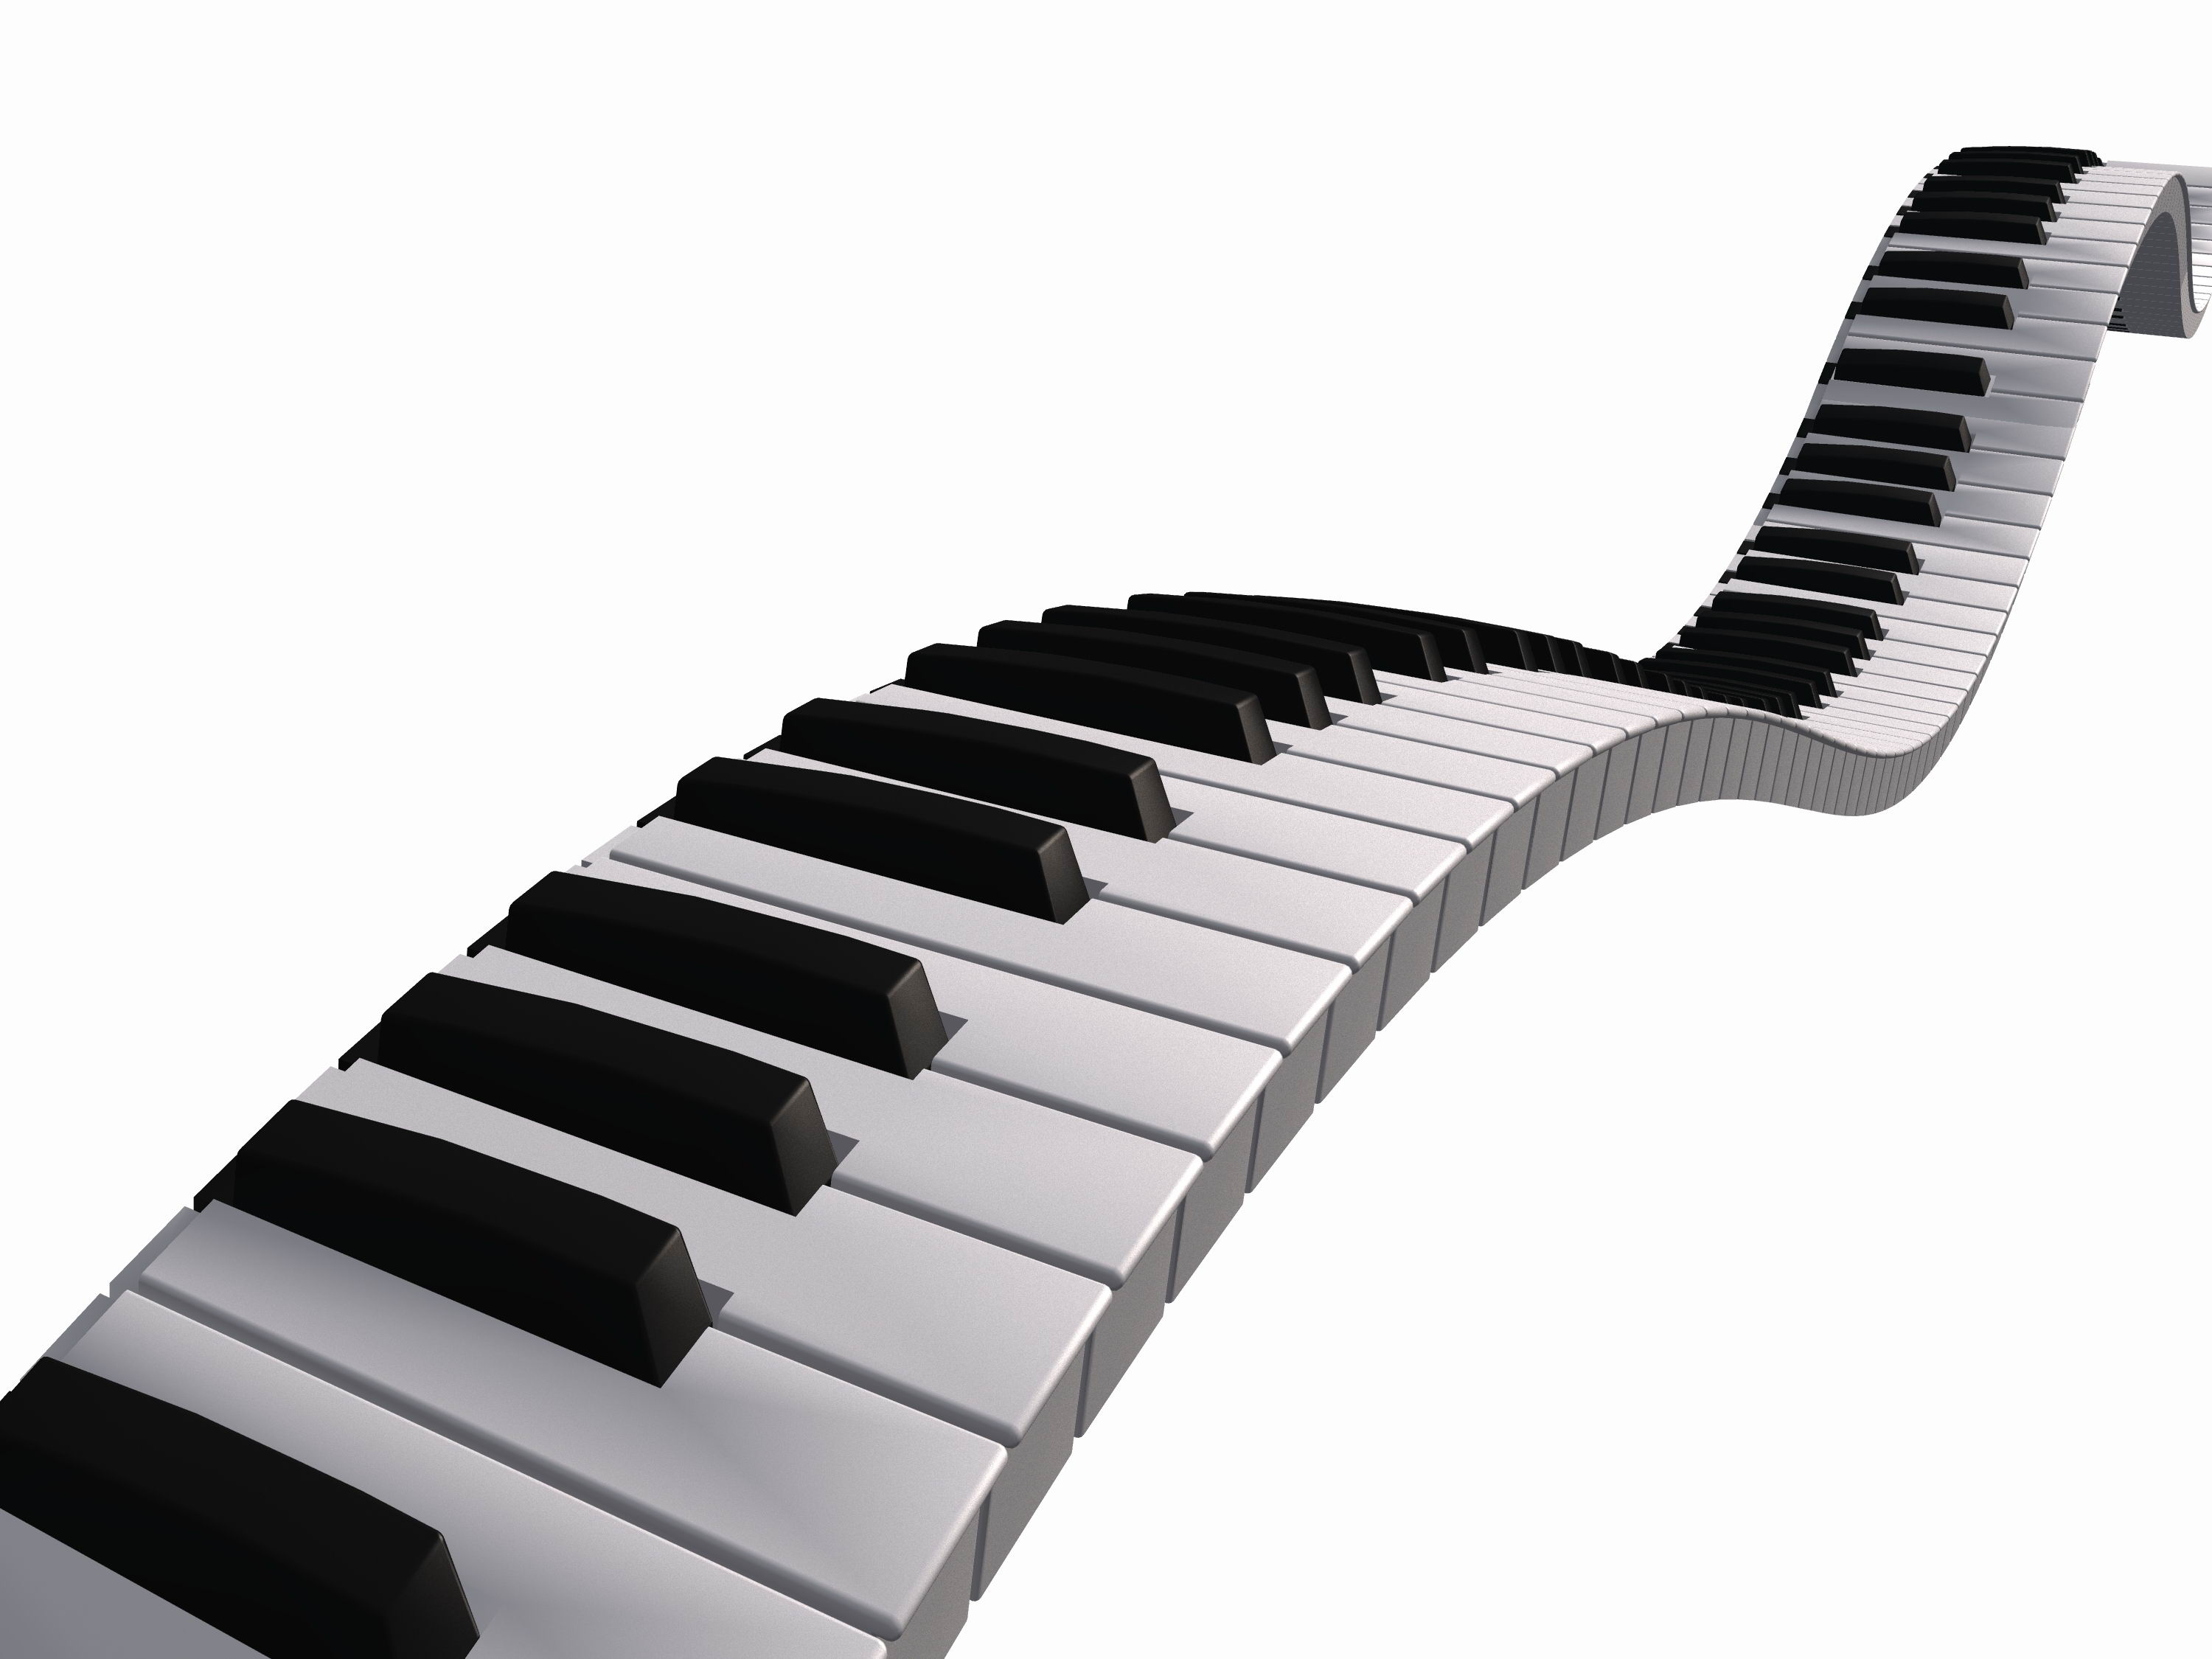 Piano Keyboard Clip Art ..